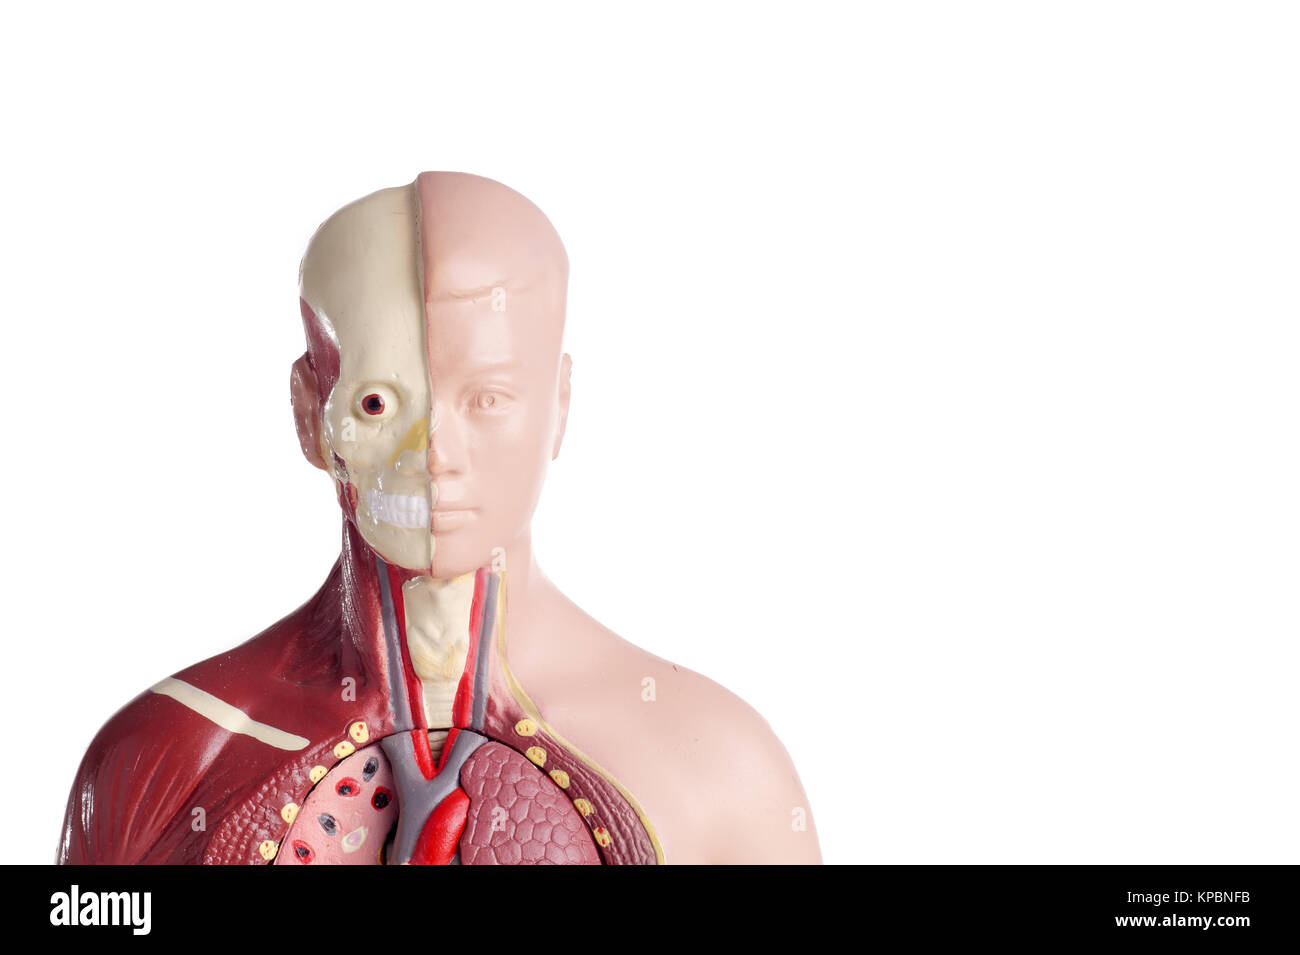 Intestines Human Organ Stockfotos & Intestines Human Organ Bilder ...